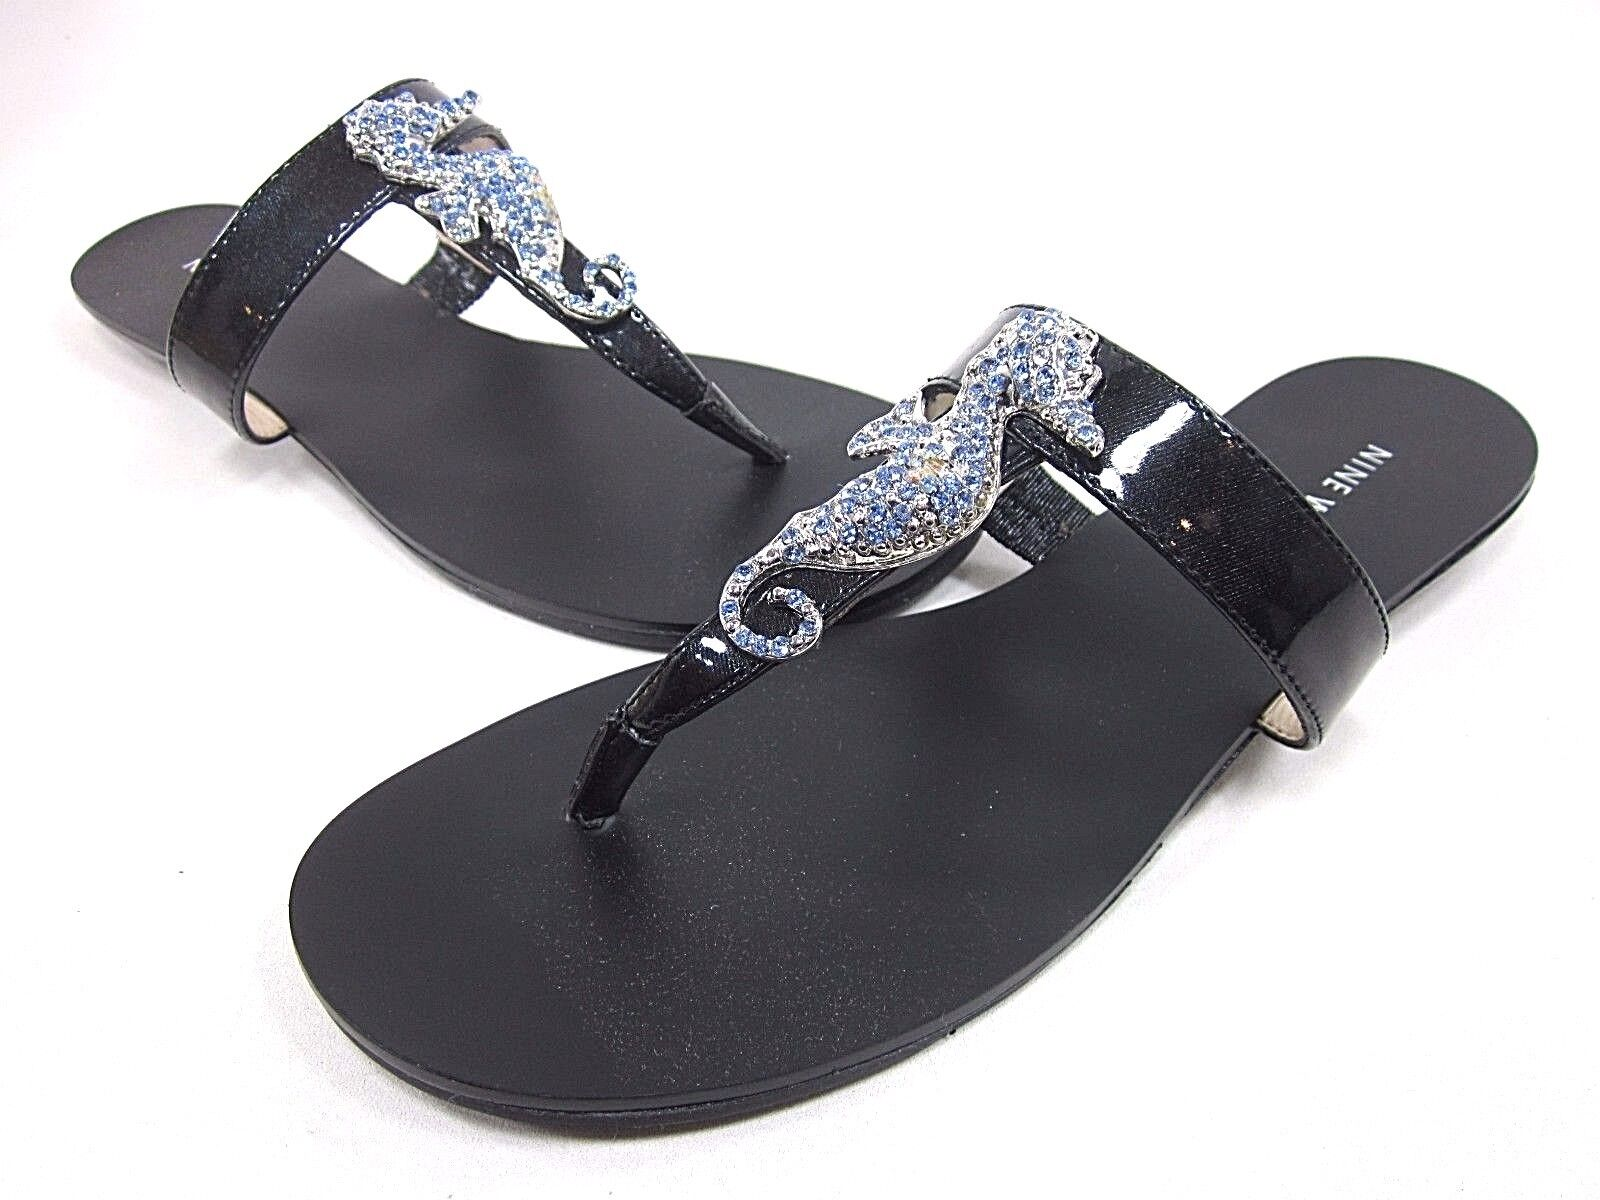 NINE WEST, WITS THONG SANDAL, WOMENS, BLACK, SYNTHETIC, US 7.5M, NEW WITHOUT BOX